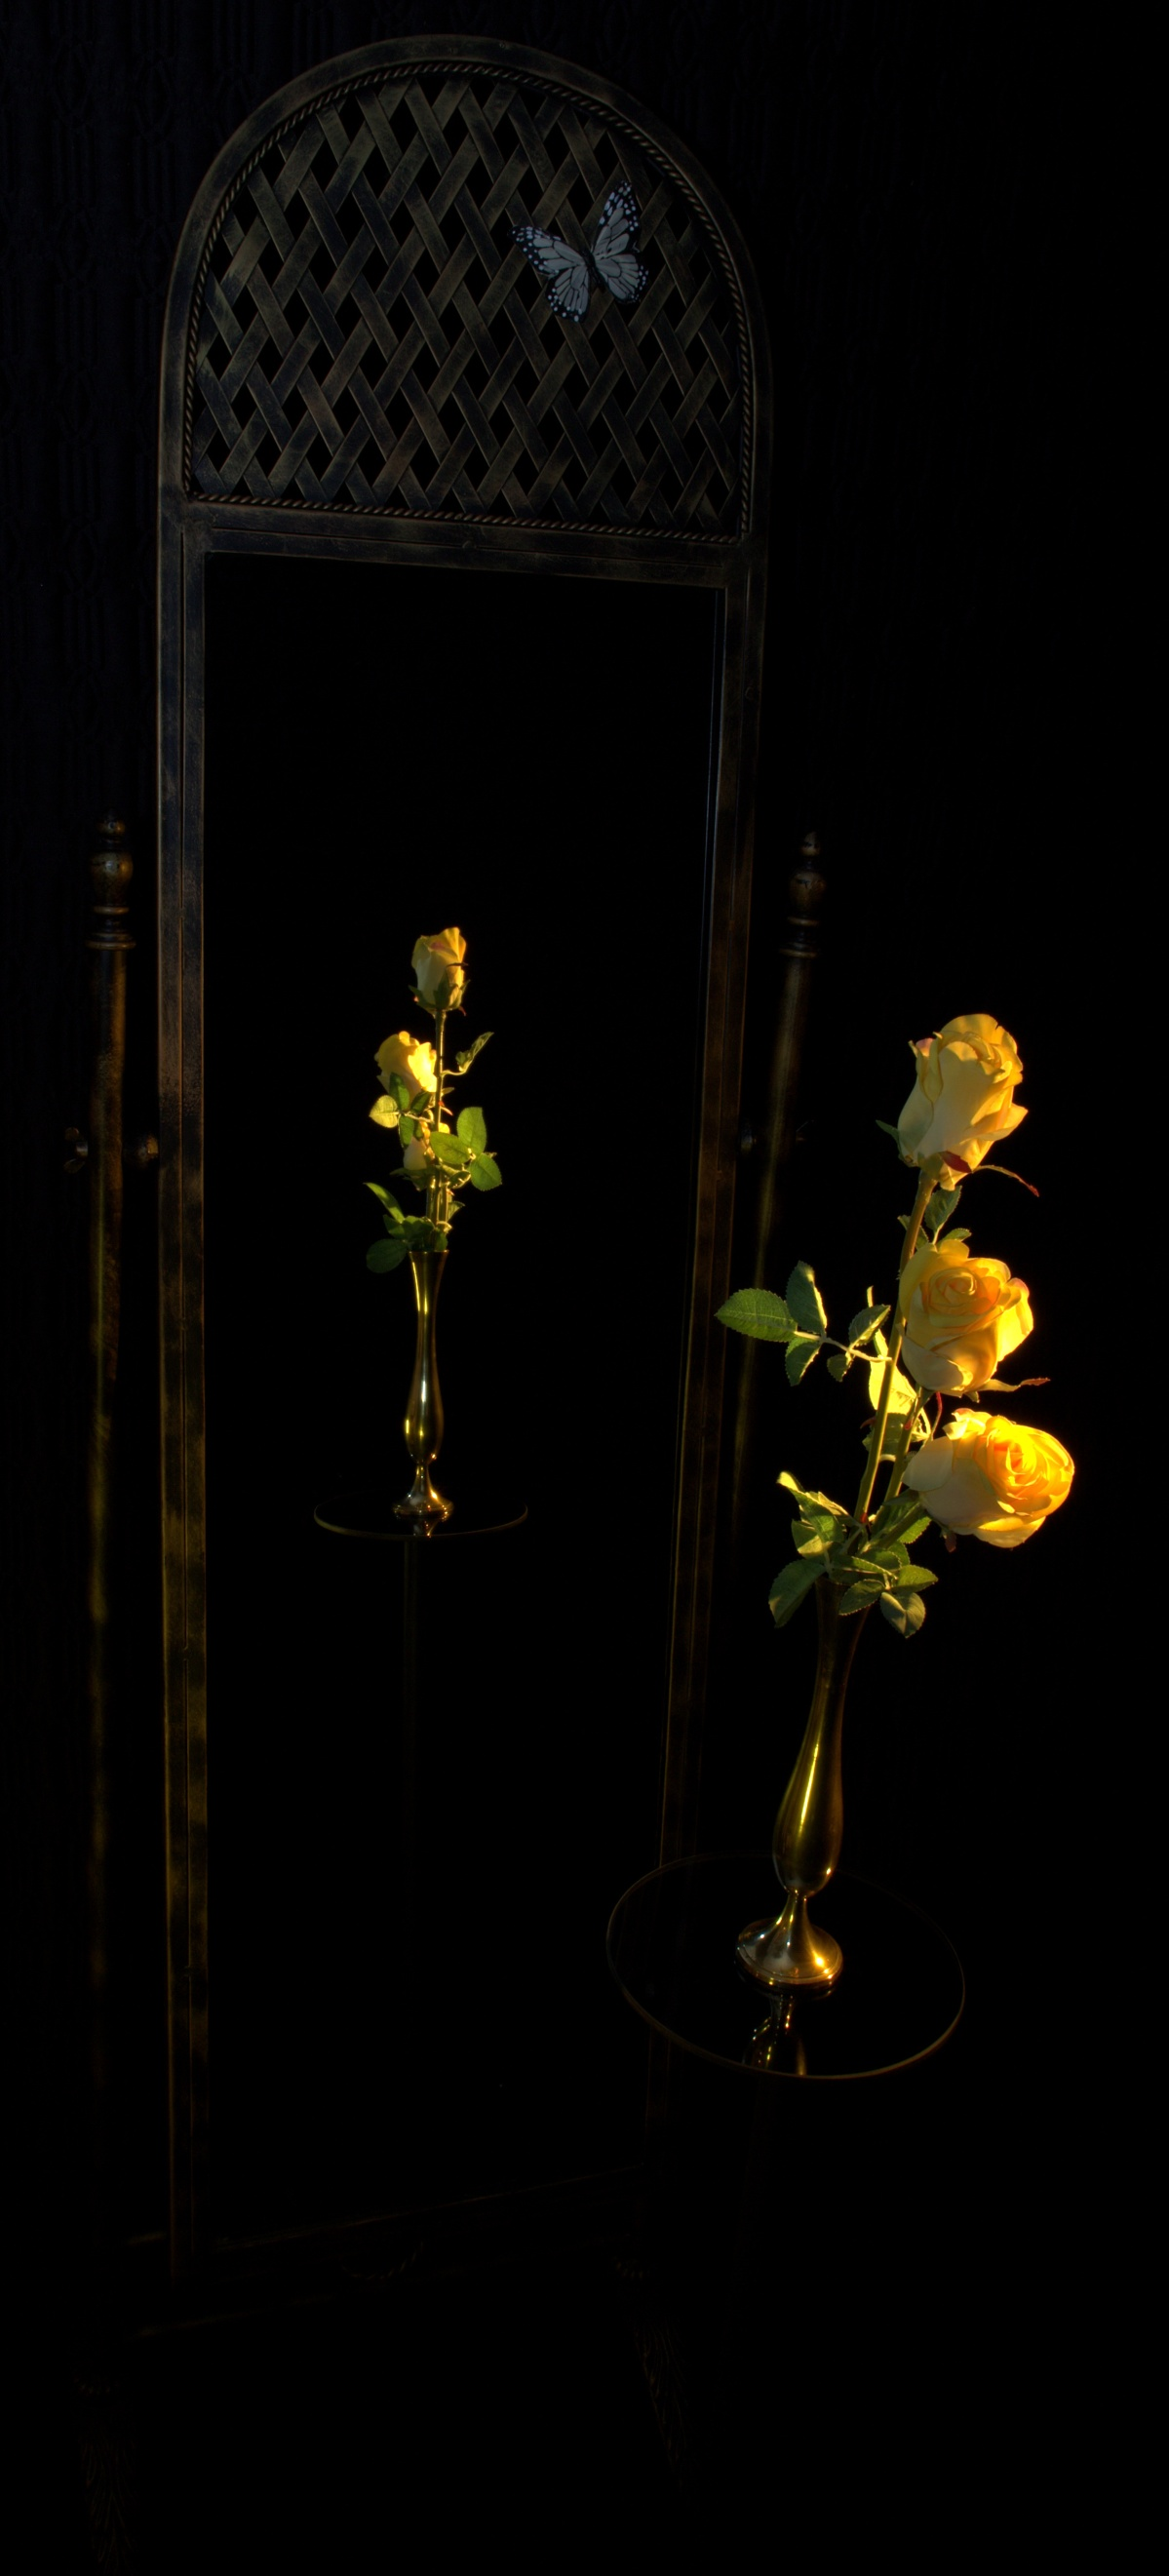 Photography ~ Still Life-3 Yellow Roses, 01/28